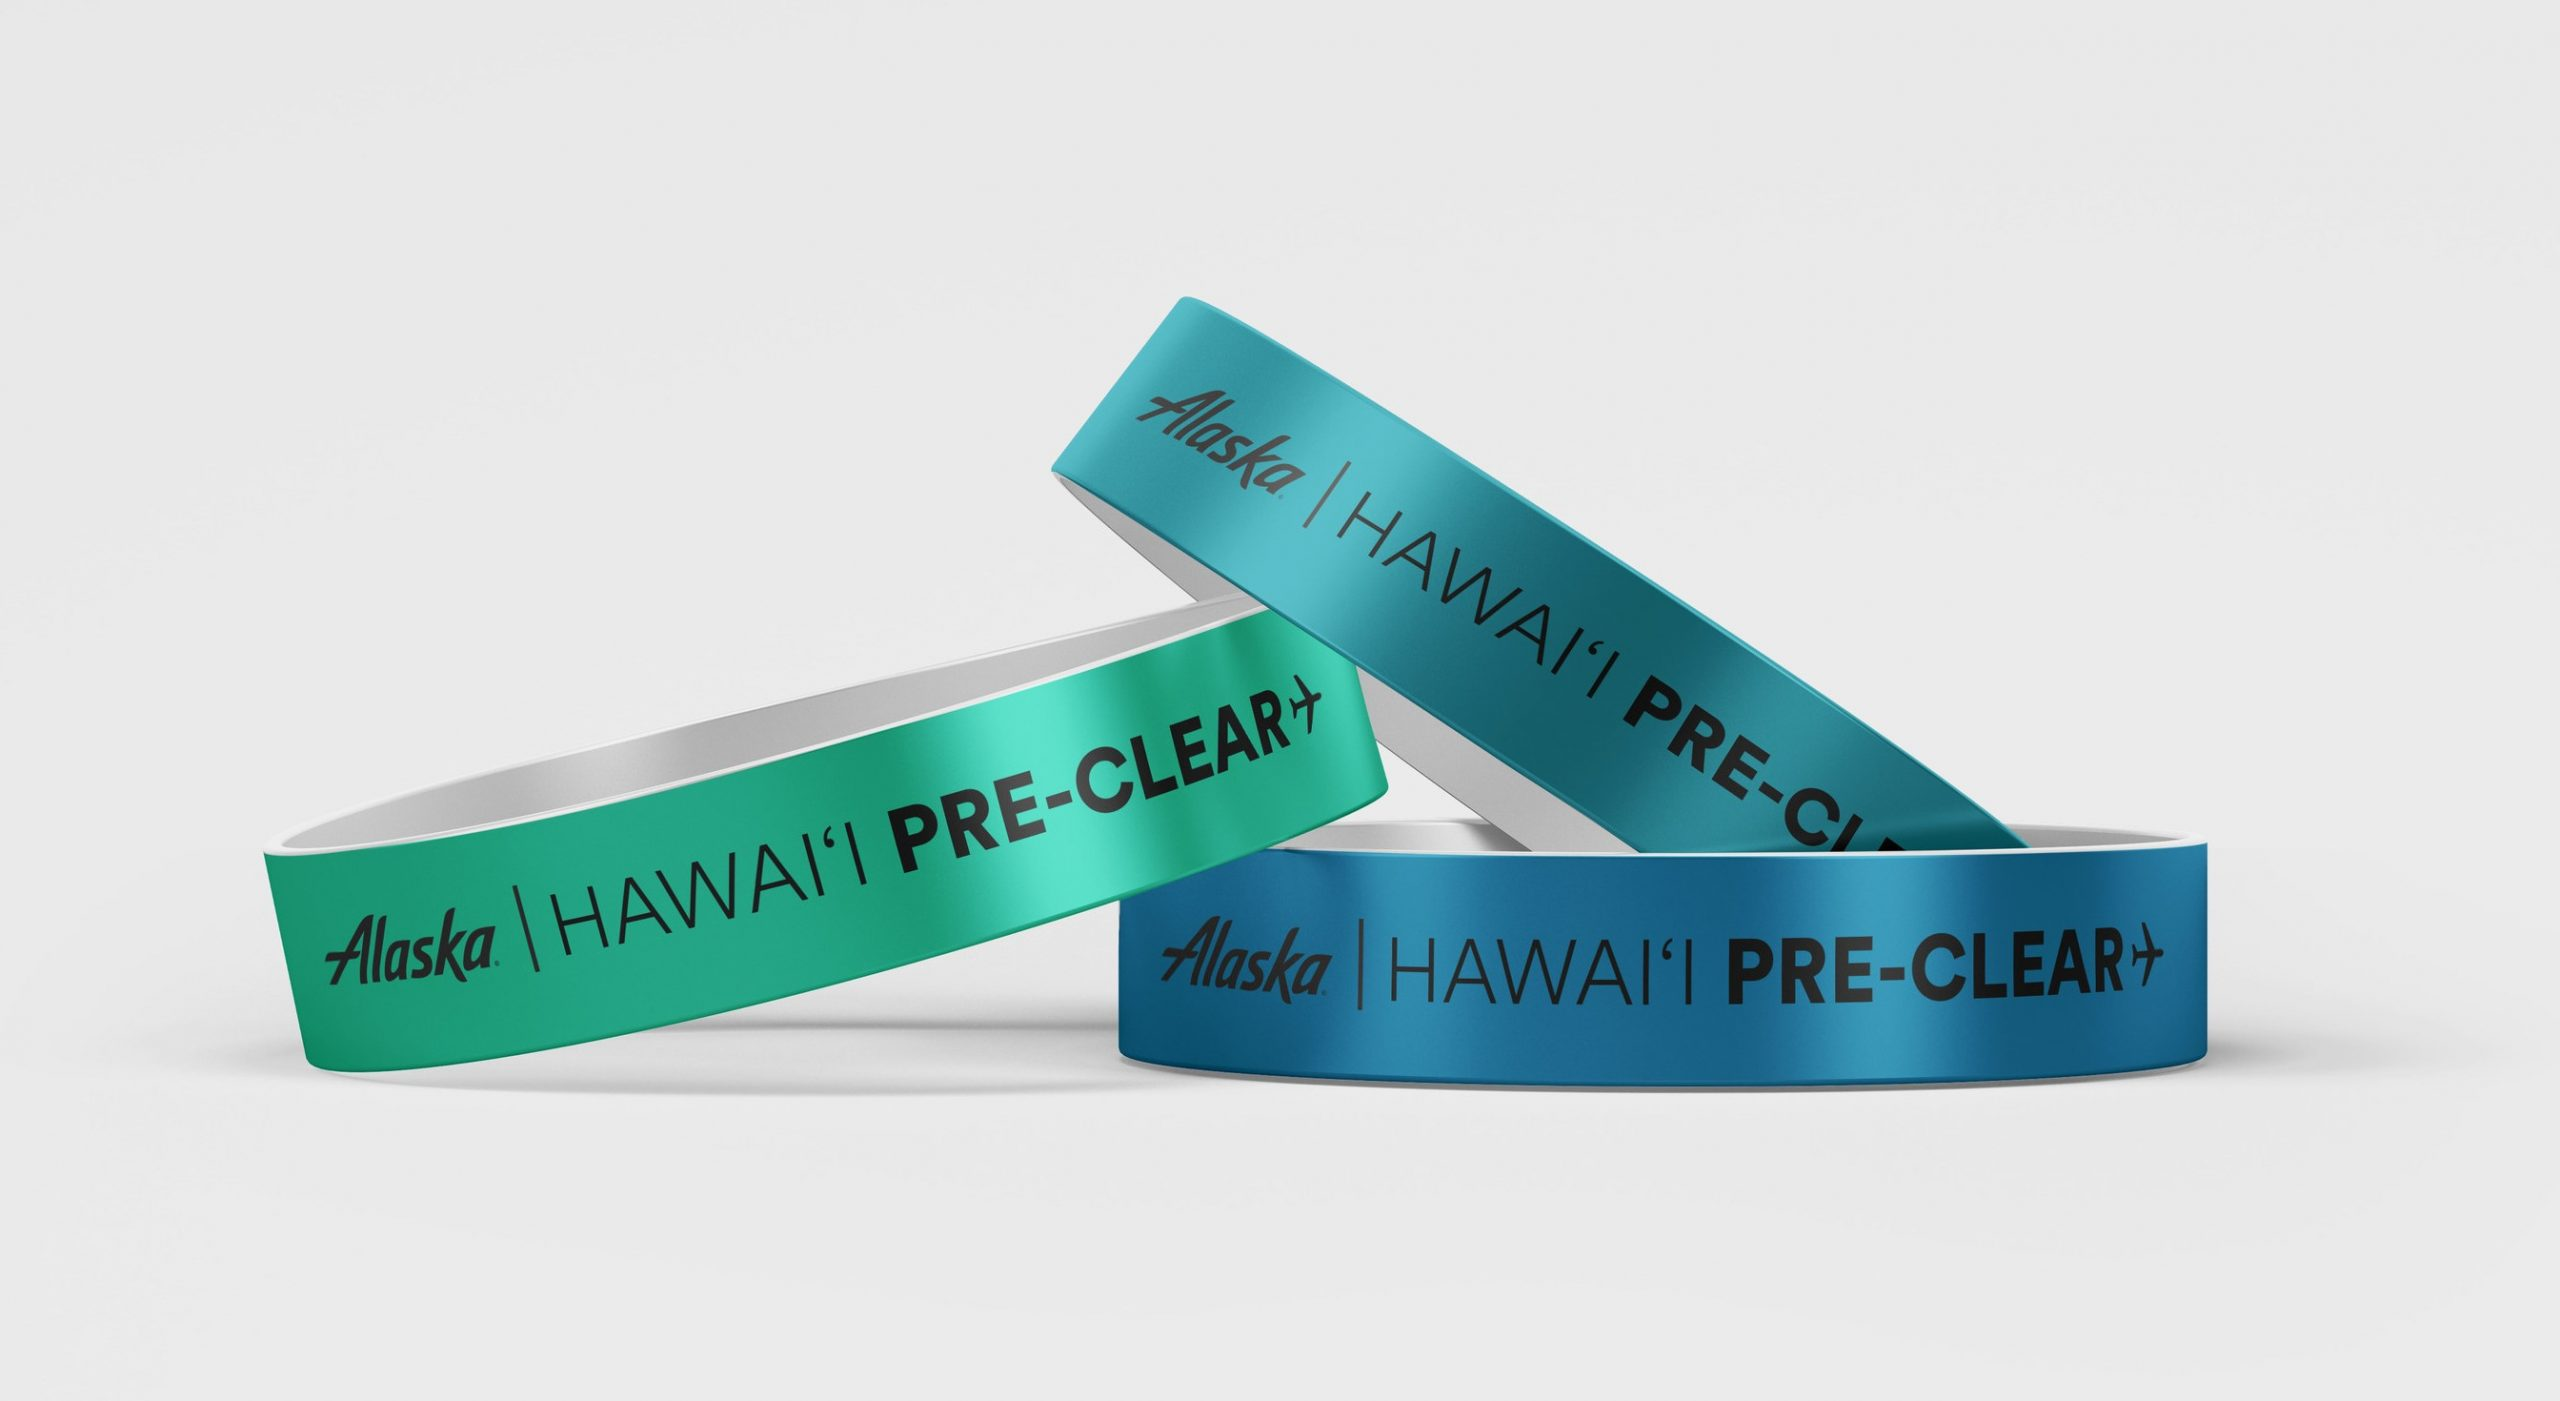 Today Alaska Airlines introduces Hawaii Pre-Clear program. Alaska's Hawaii-bound guests can now skip the line upon arrival in the Hawaiian Islands.